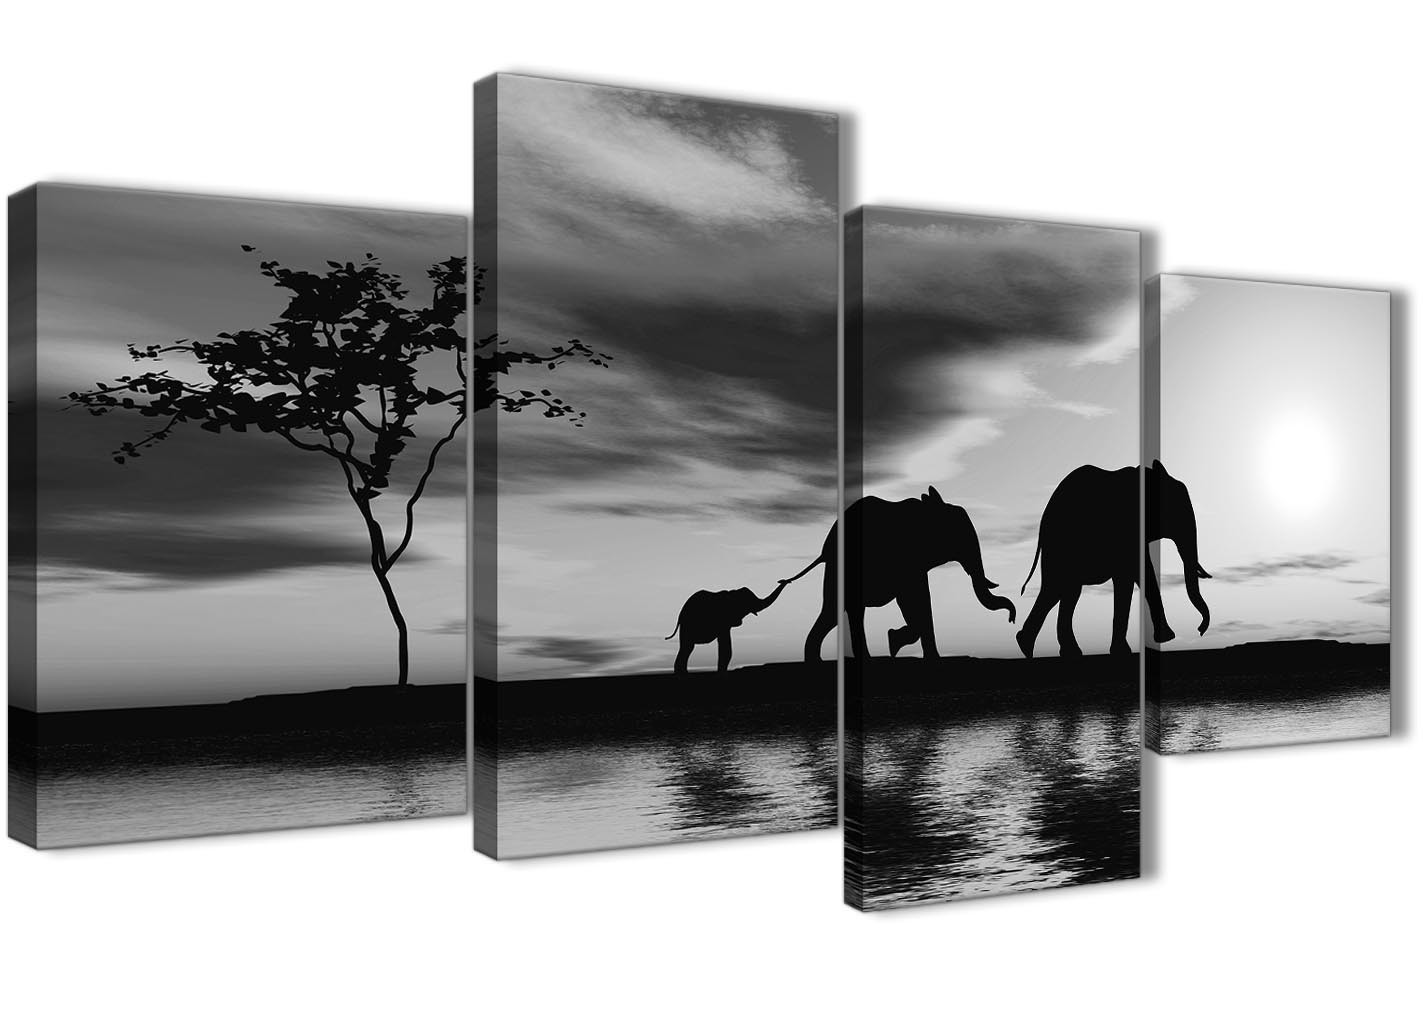 ELEPHANT WALL ART GREY RED YELLOW BLACK SUNSET AFRICA SPLIT CANVAS PICTURES